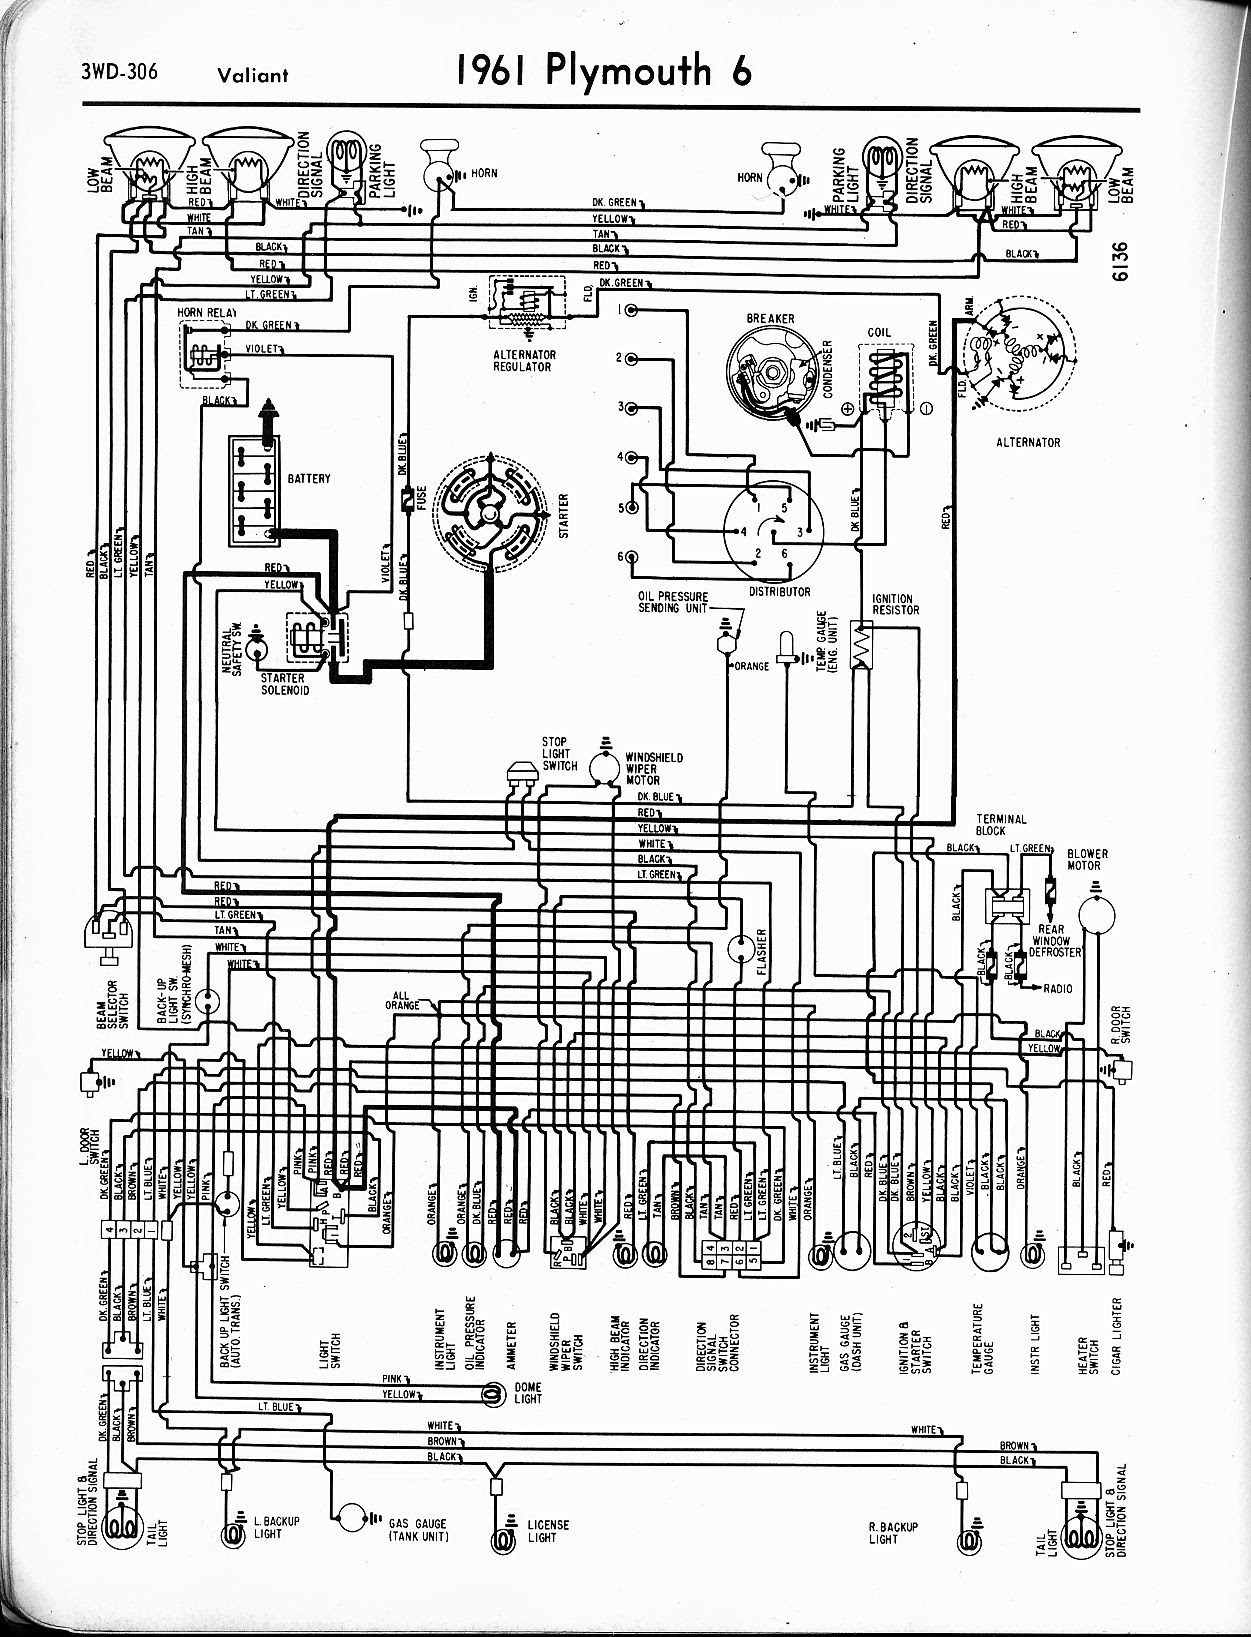 73 Roadrunner Wiring Diagram - Wiring Diagram Networks